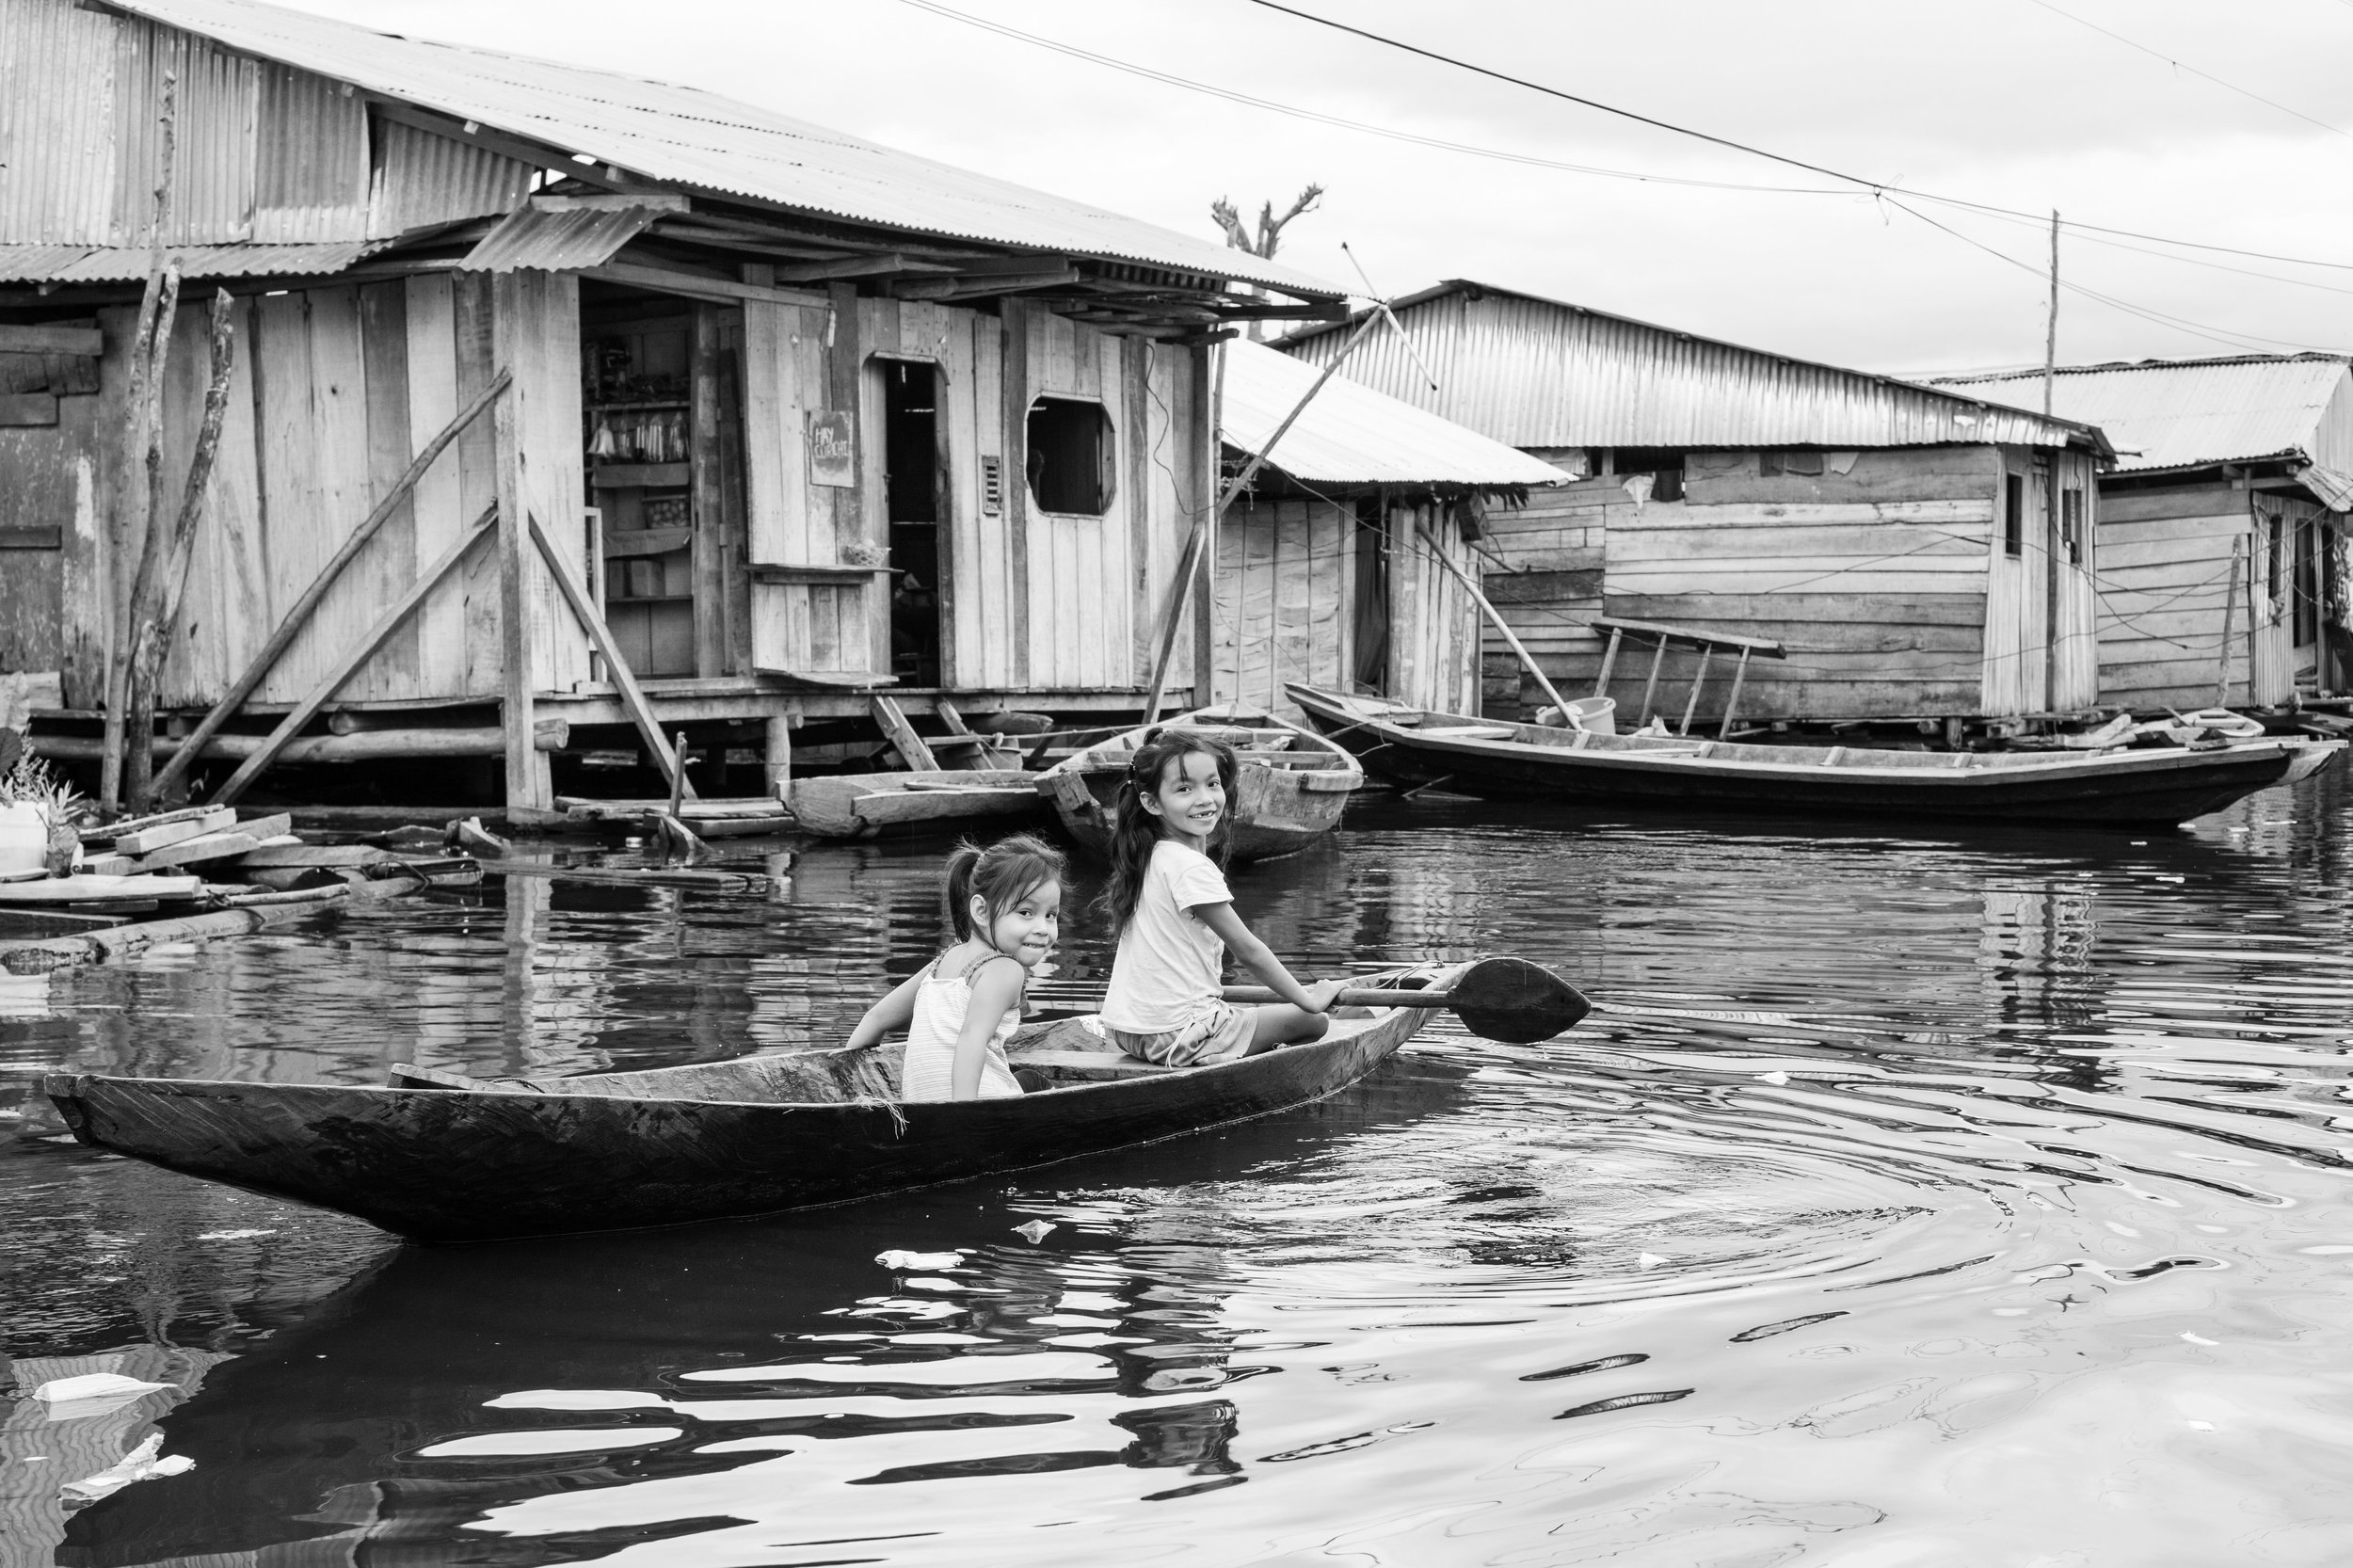 Two young girls paddle a canoe in the flooded village of Belen in Iquitos, Peru.